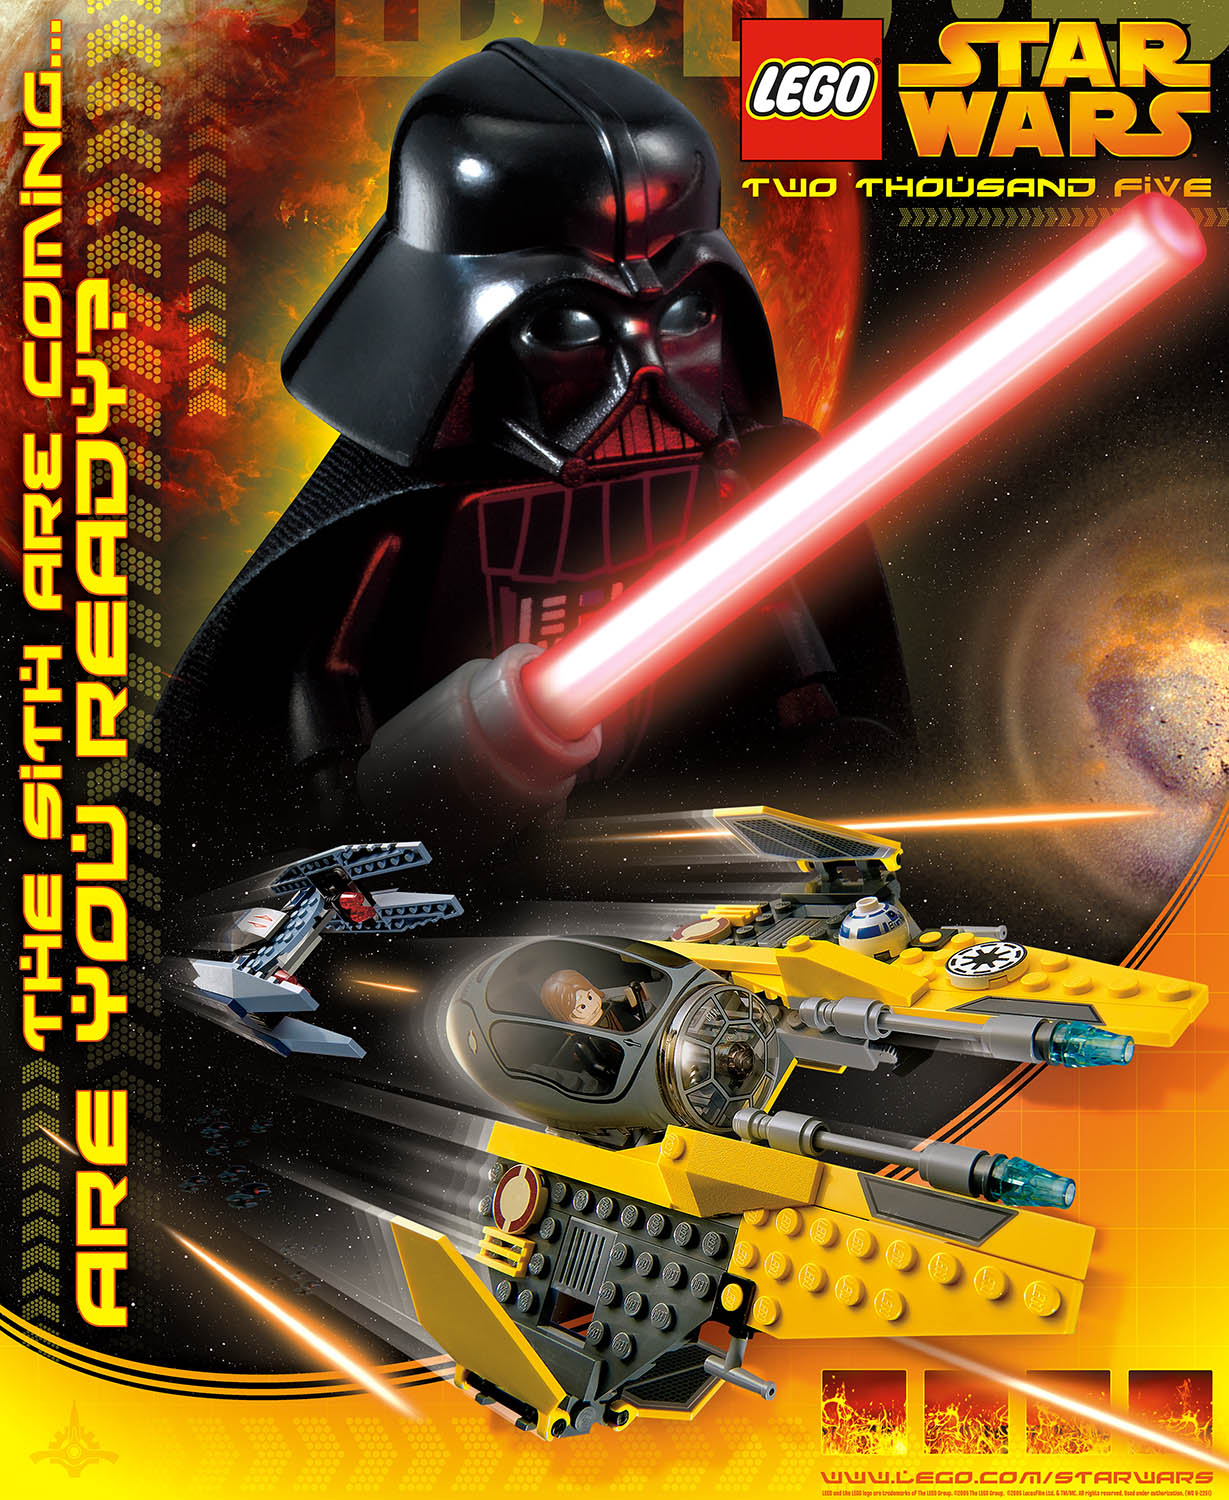 Lego Star Wars, Promotional